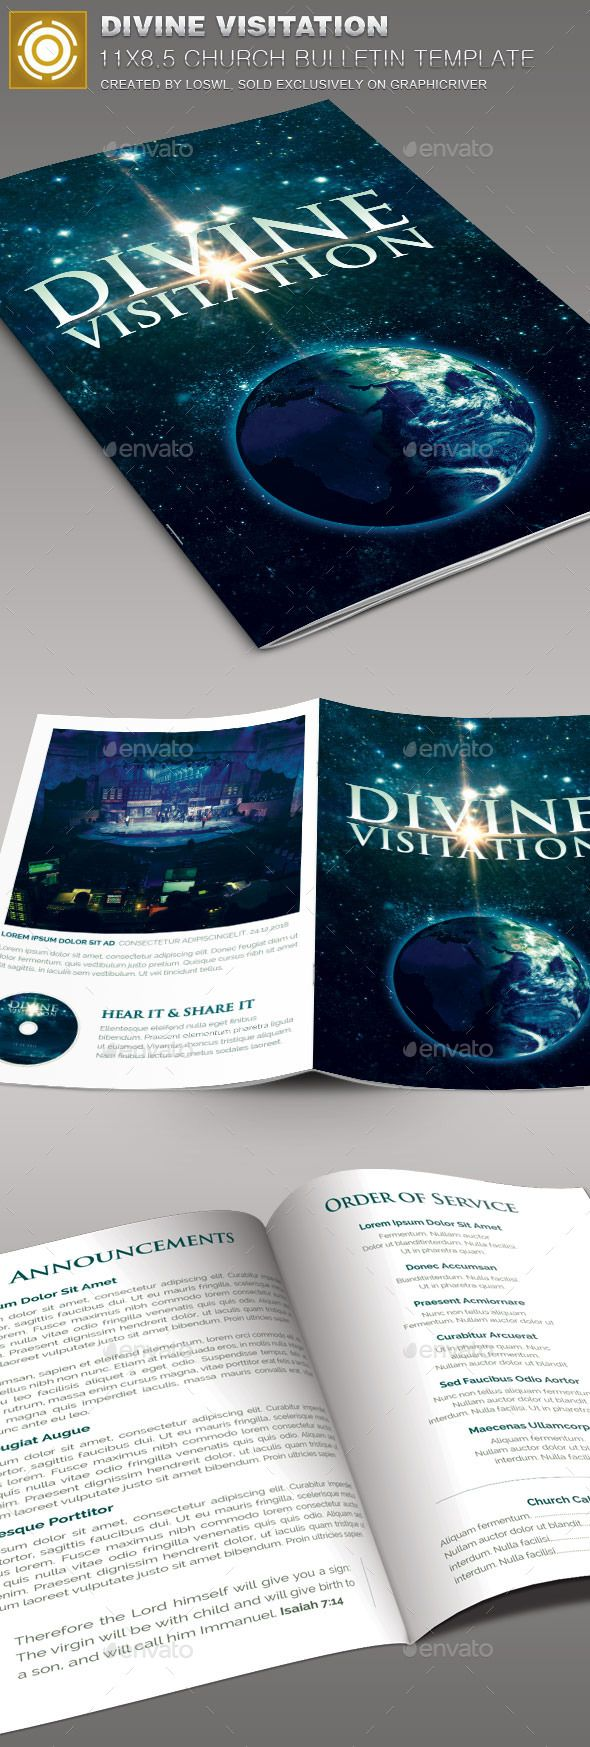 Best Modern Church Bulletins  Newsletters Images On